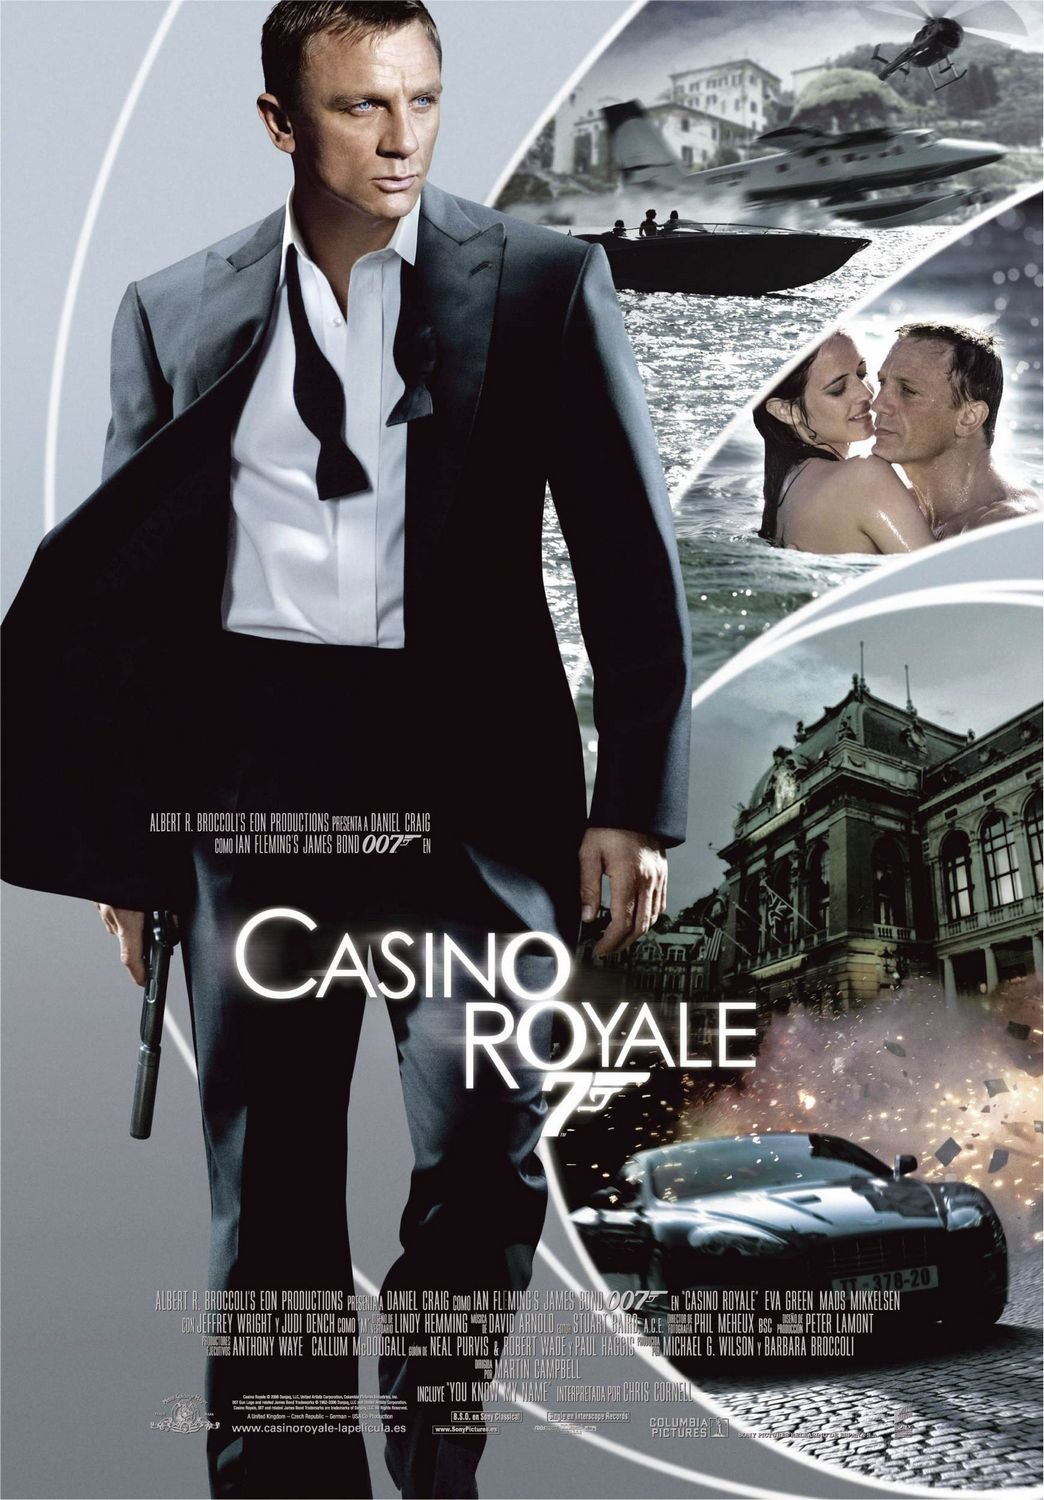 casino royale 2006 full movie online free oneline casino